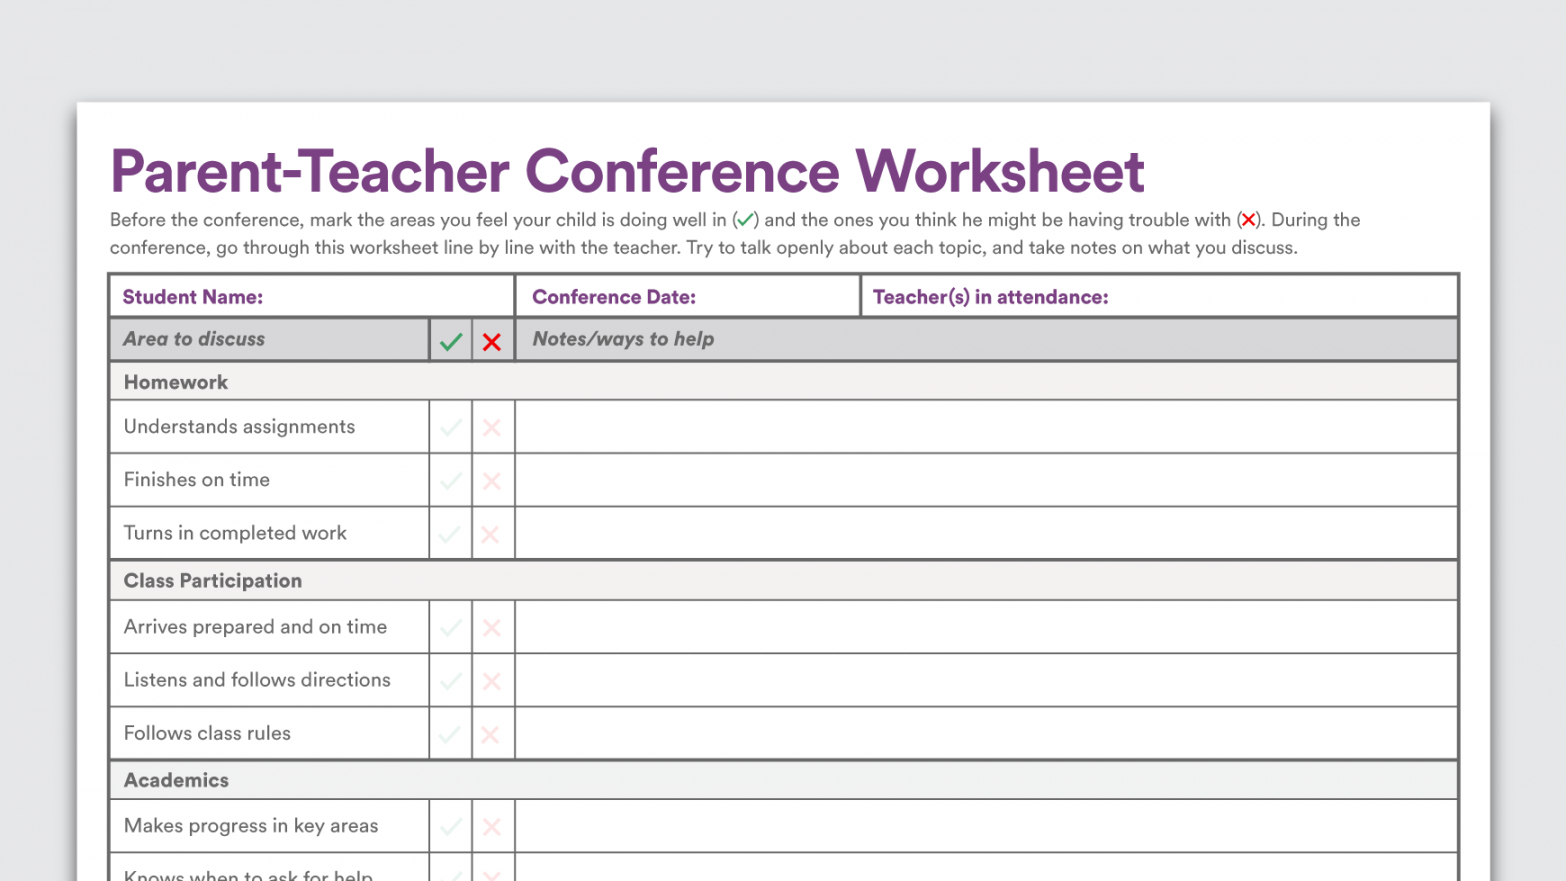 printable printable parent cher conference worksheet form high school parent teacher conference checklist template excel